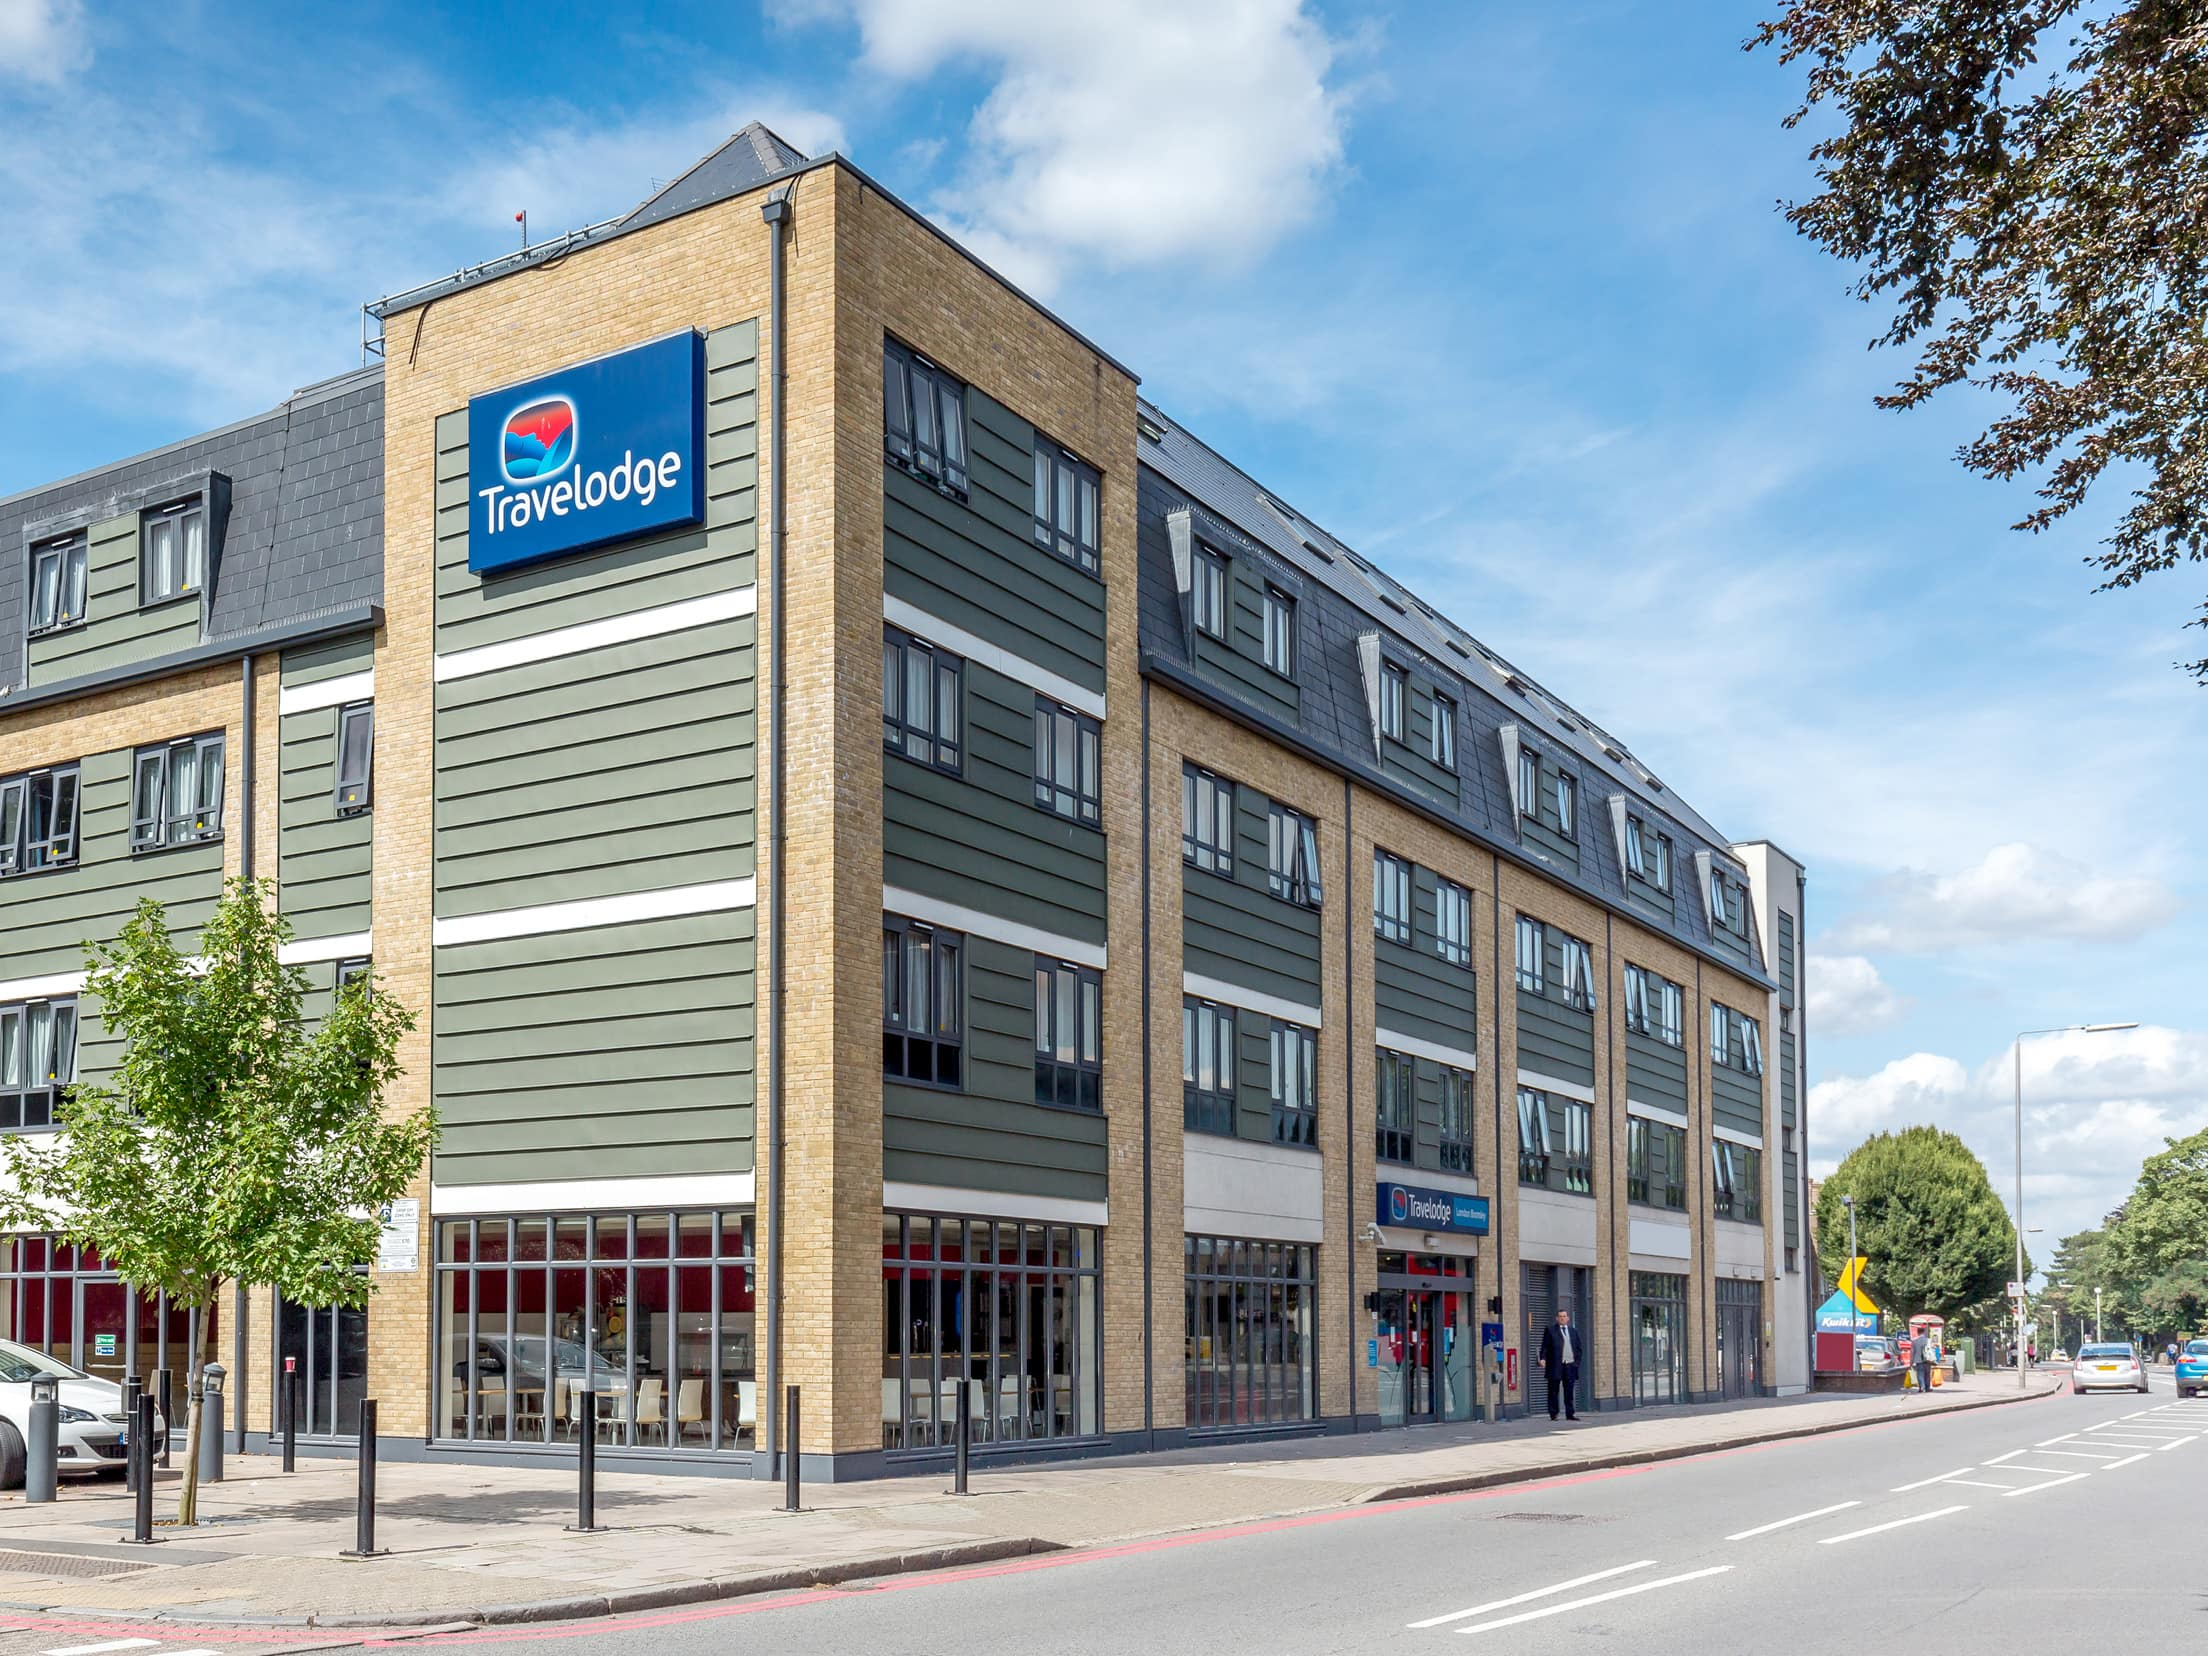 Hotels in bromley bromley hotels travelodge for The bromley